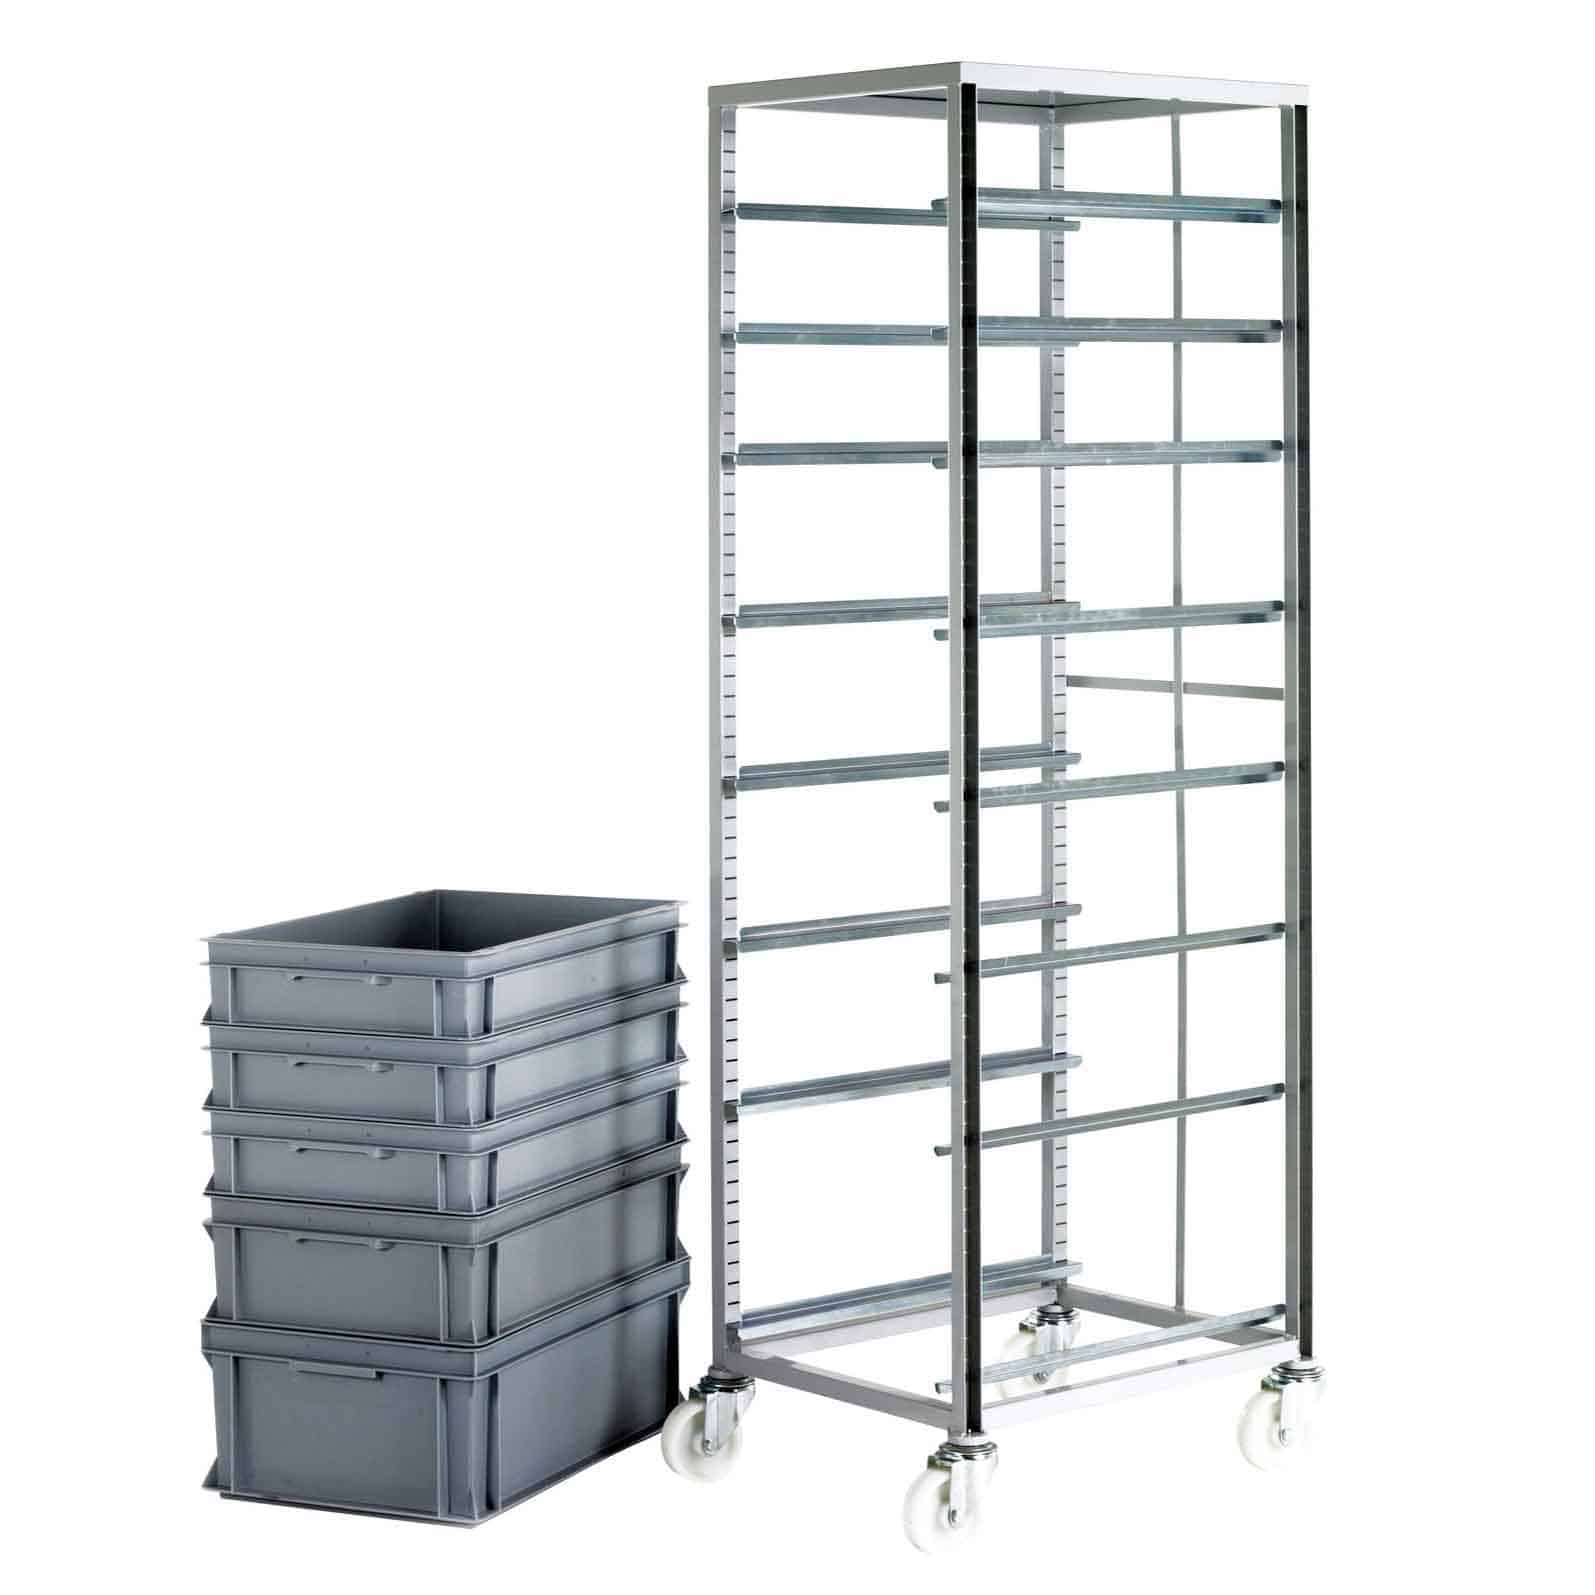 Adjustable Tray Racks